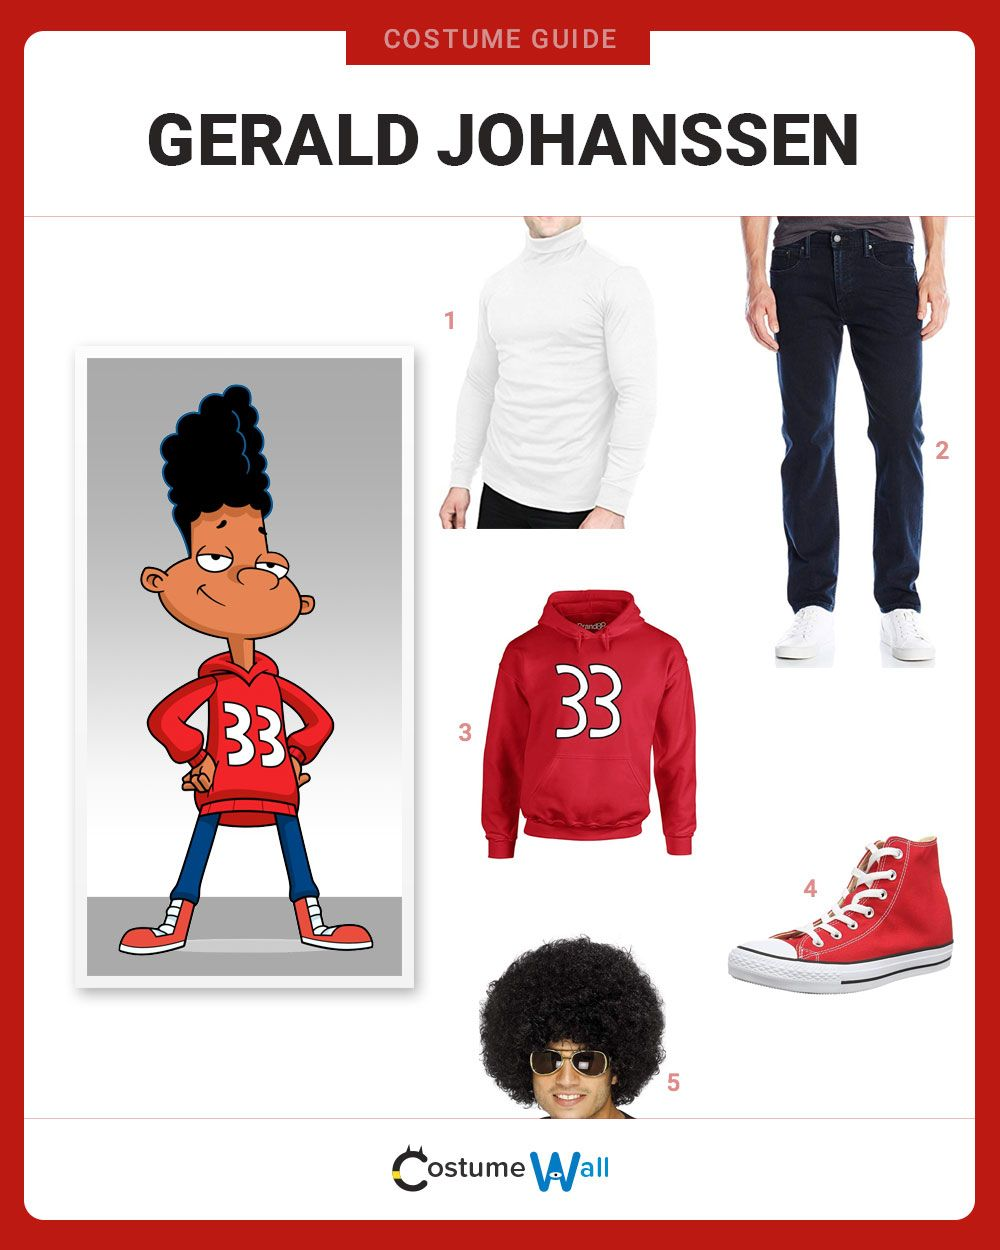 Dress Like Gerald Johanssen Clever Halloween Costumes Top Halloween Costumes Pretty Halloween Costumes Stream gerald martin johanssen the new song from tailrmdelvn. dress like gerald johanssen clever